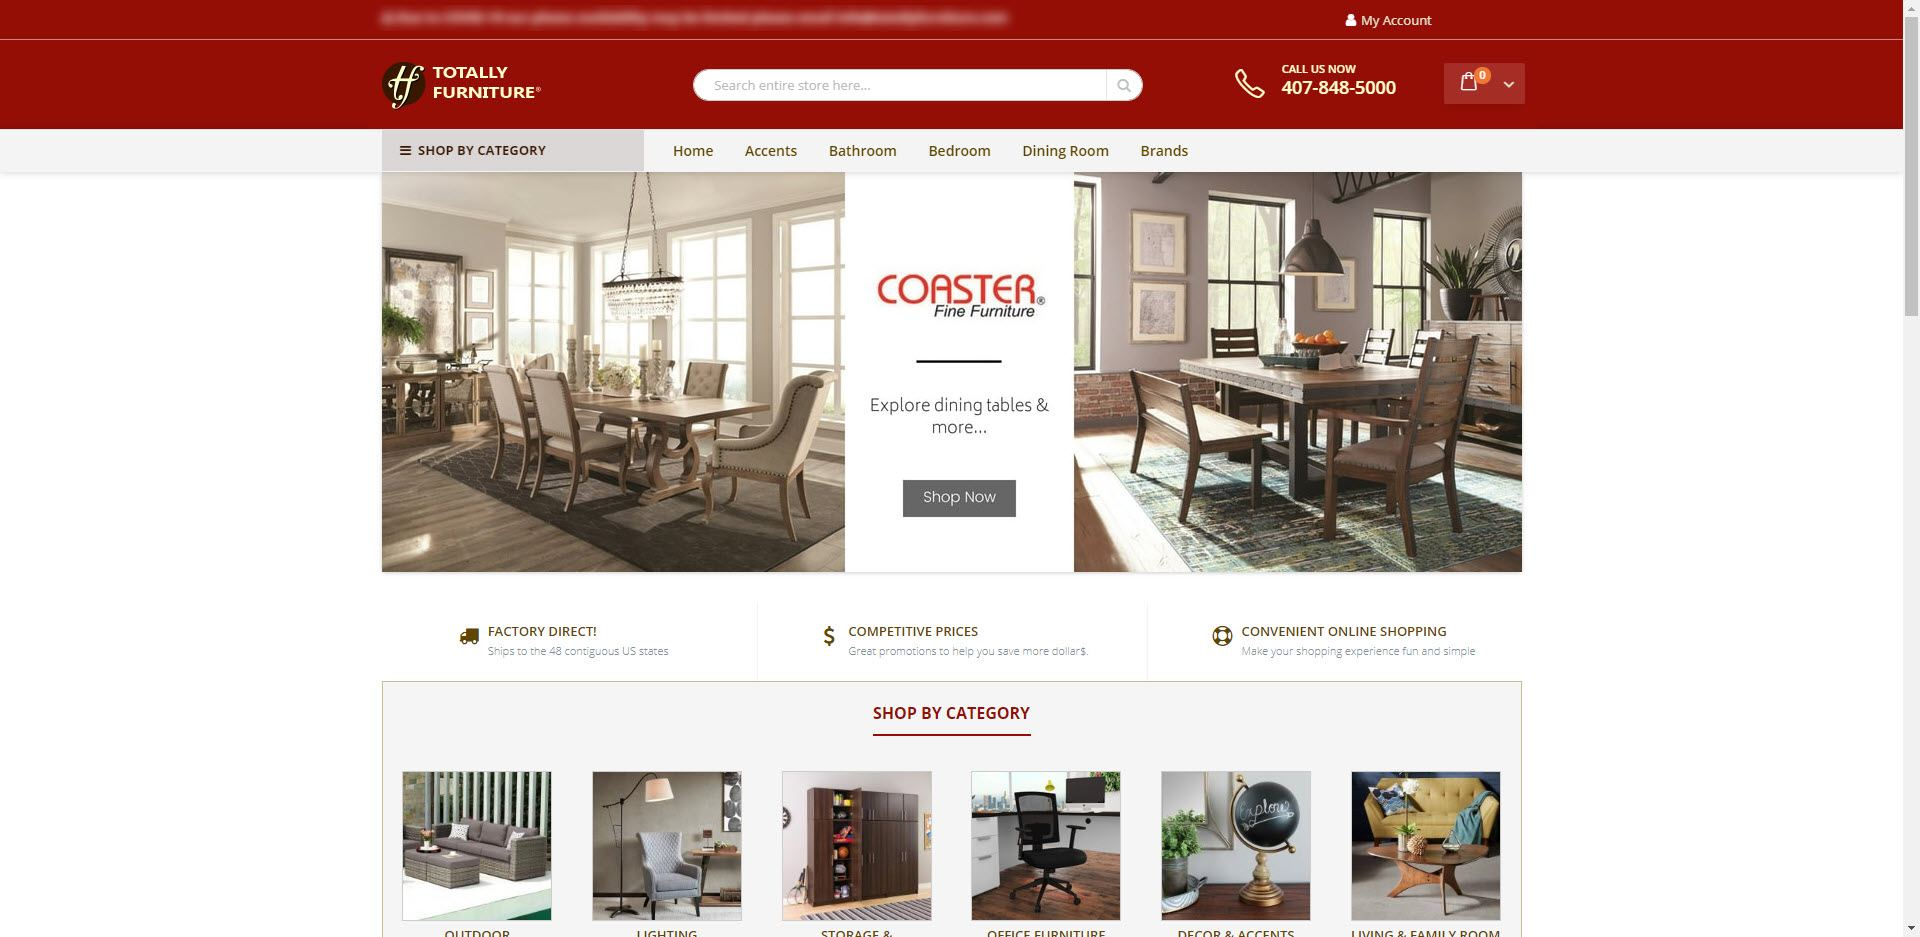 furniture affiliate programs - Totally Furniture Home